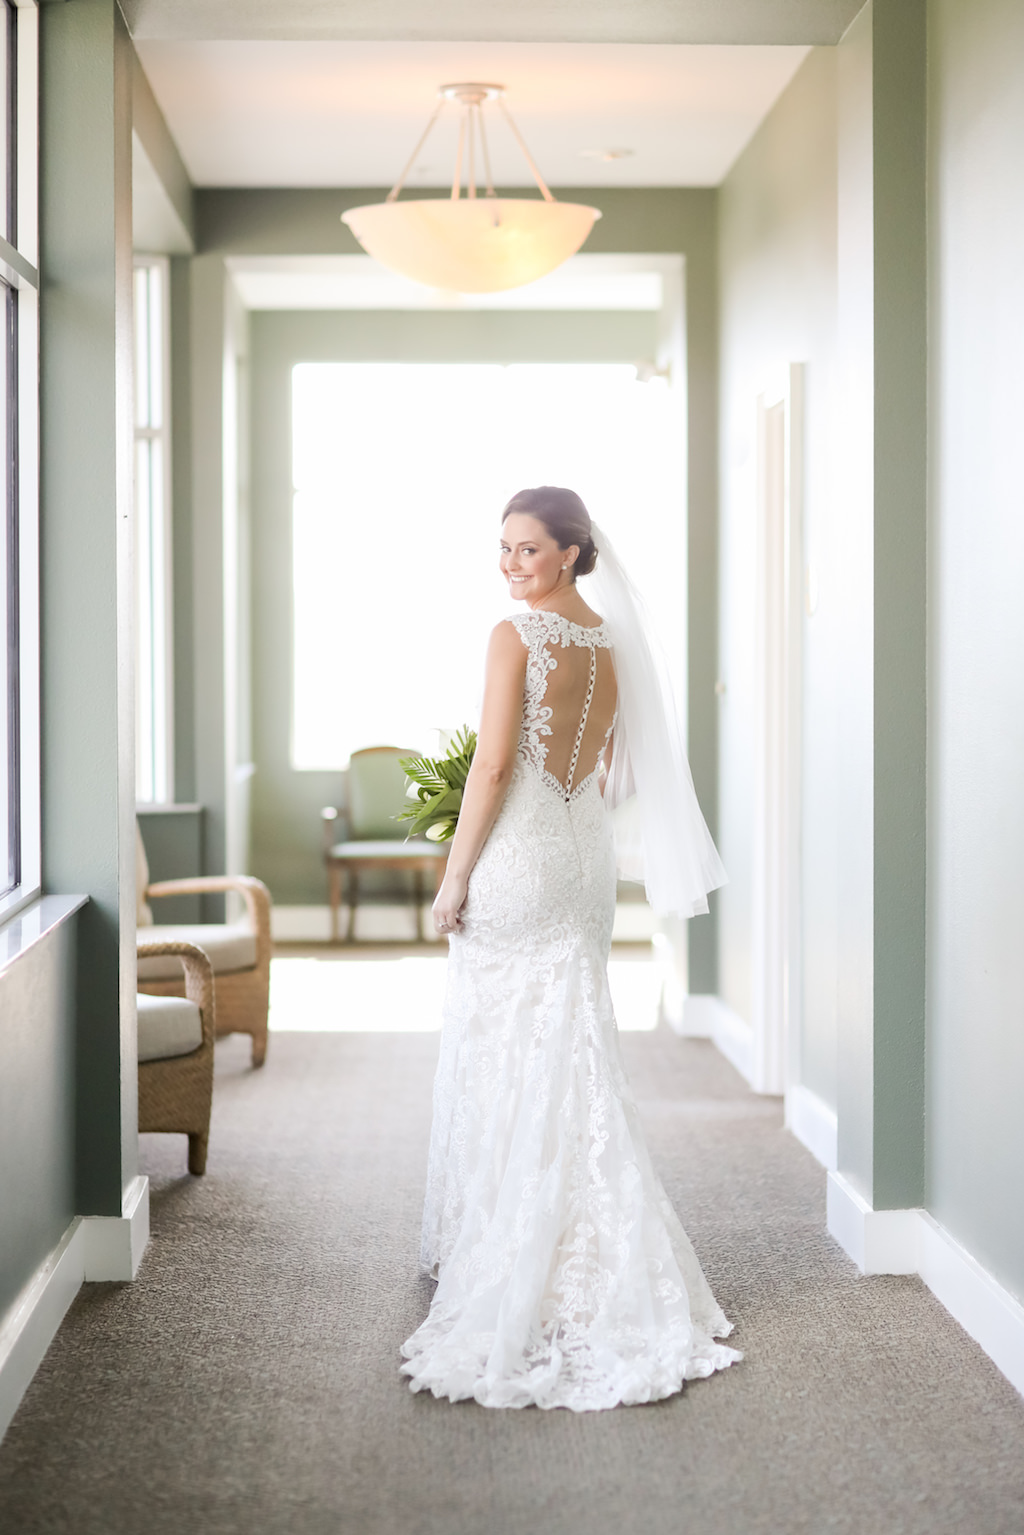 Tampa Bay Bride Wedding Portrait in Fitted Lace and Keyhole Illusion with Button Back Wedding Dress | Photographer LifeLong Photography Studios